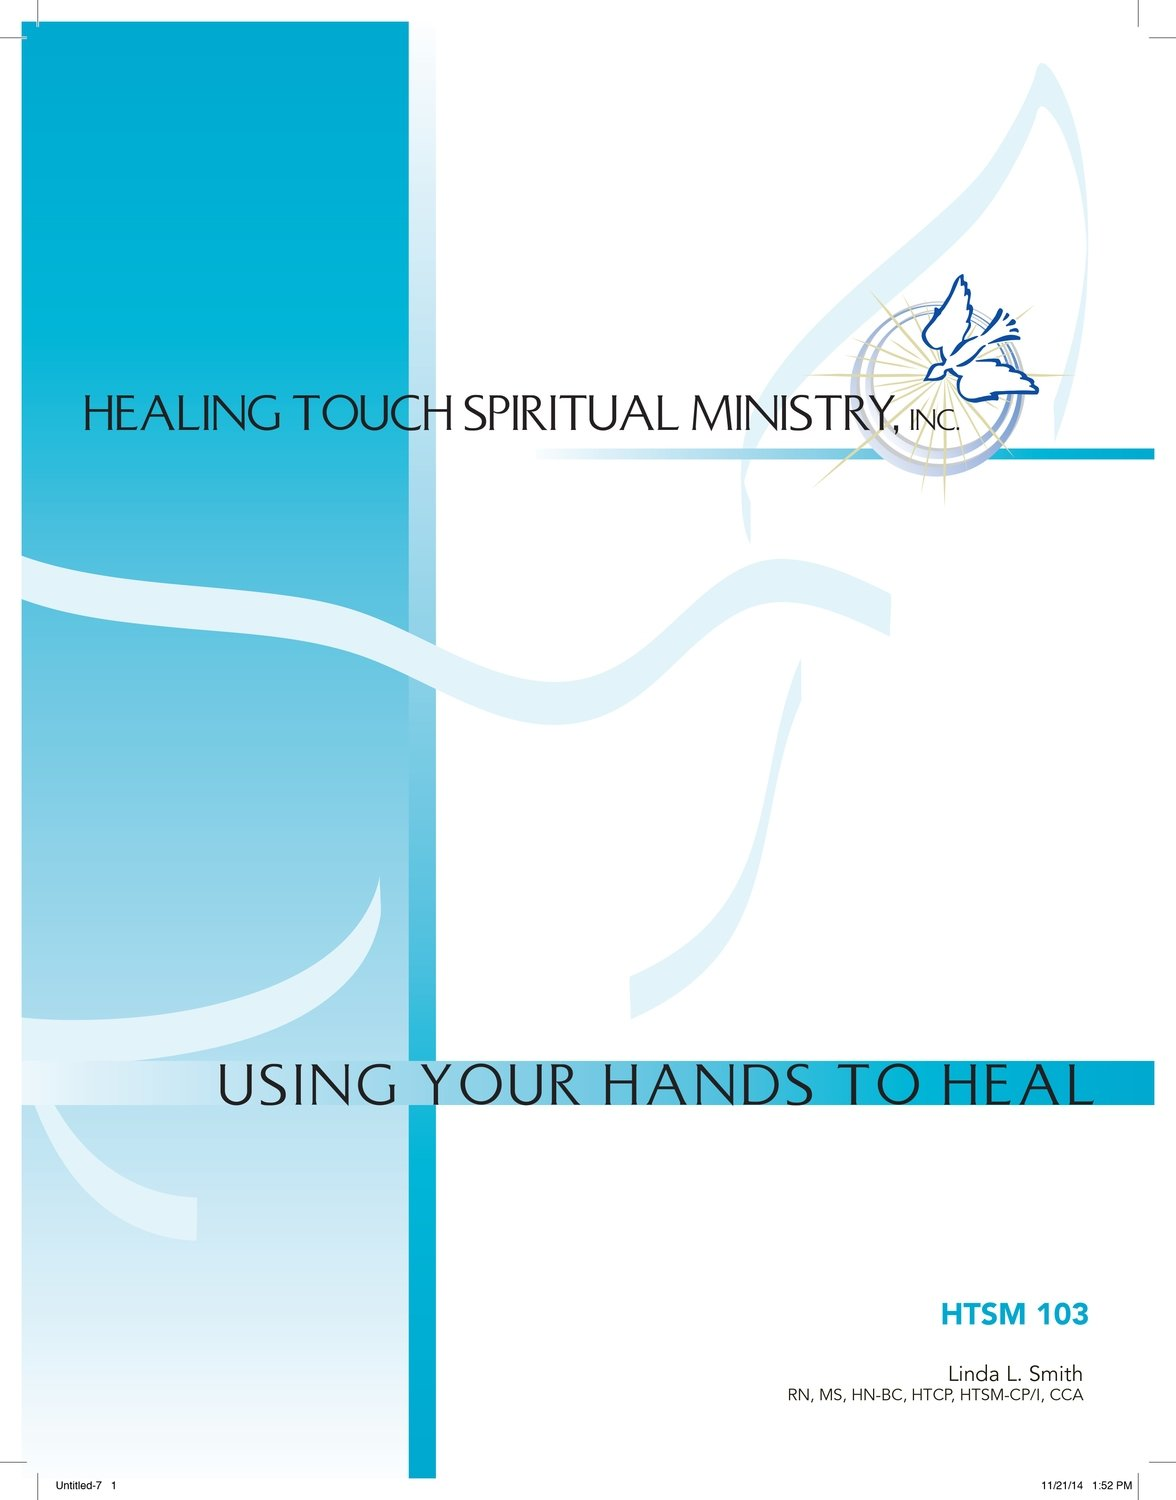 HTSM 103: Using Your Hands To Heal - Knoxville, TN - December 12-13, 2020 ZOOM ONLY